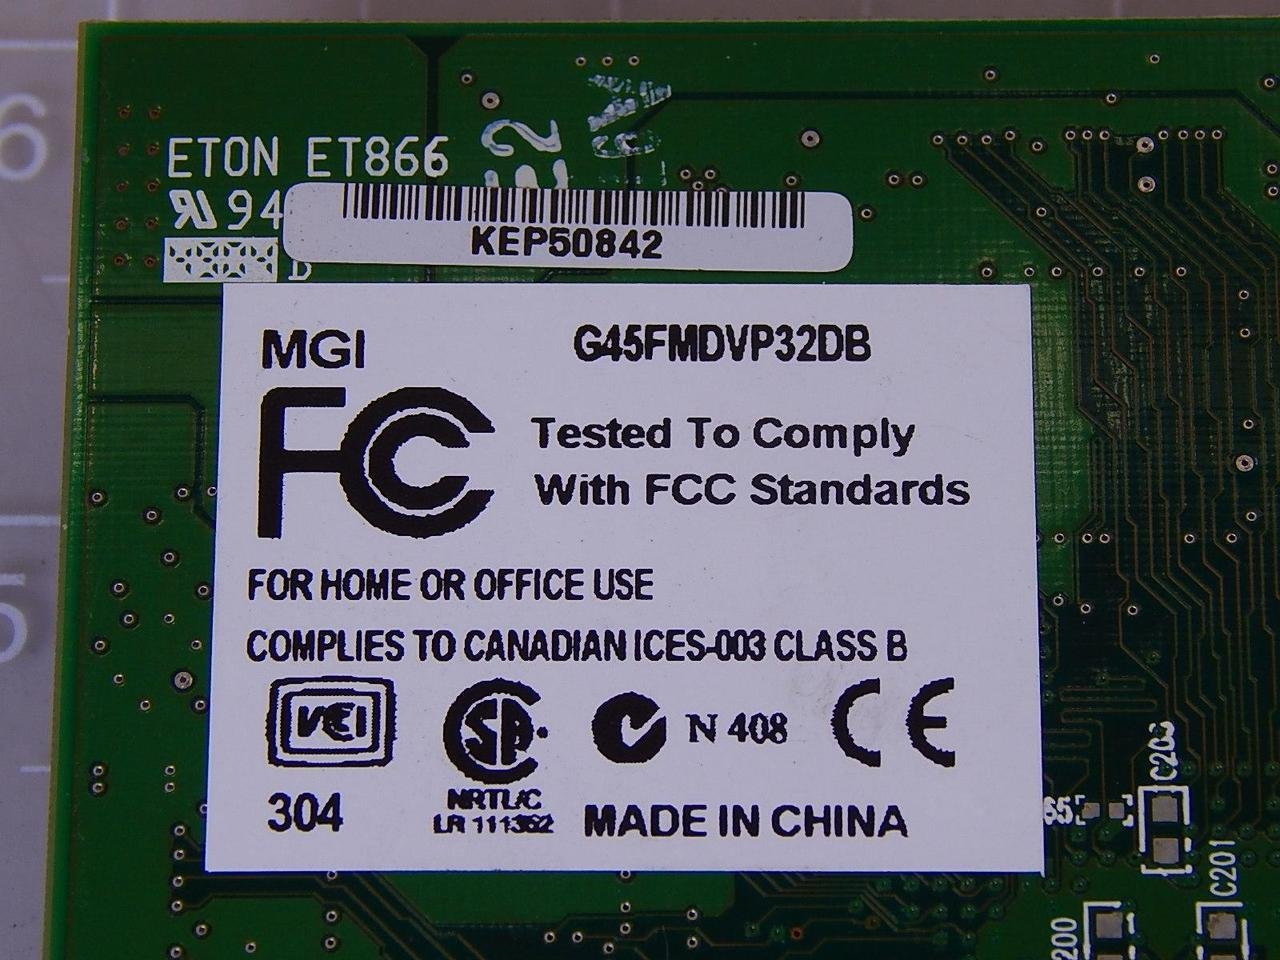 MATROX ETON ET866 VIDEO CARD DOWNLOAD DRIVERS